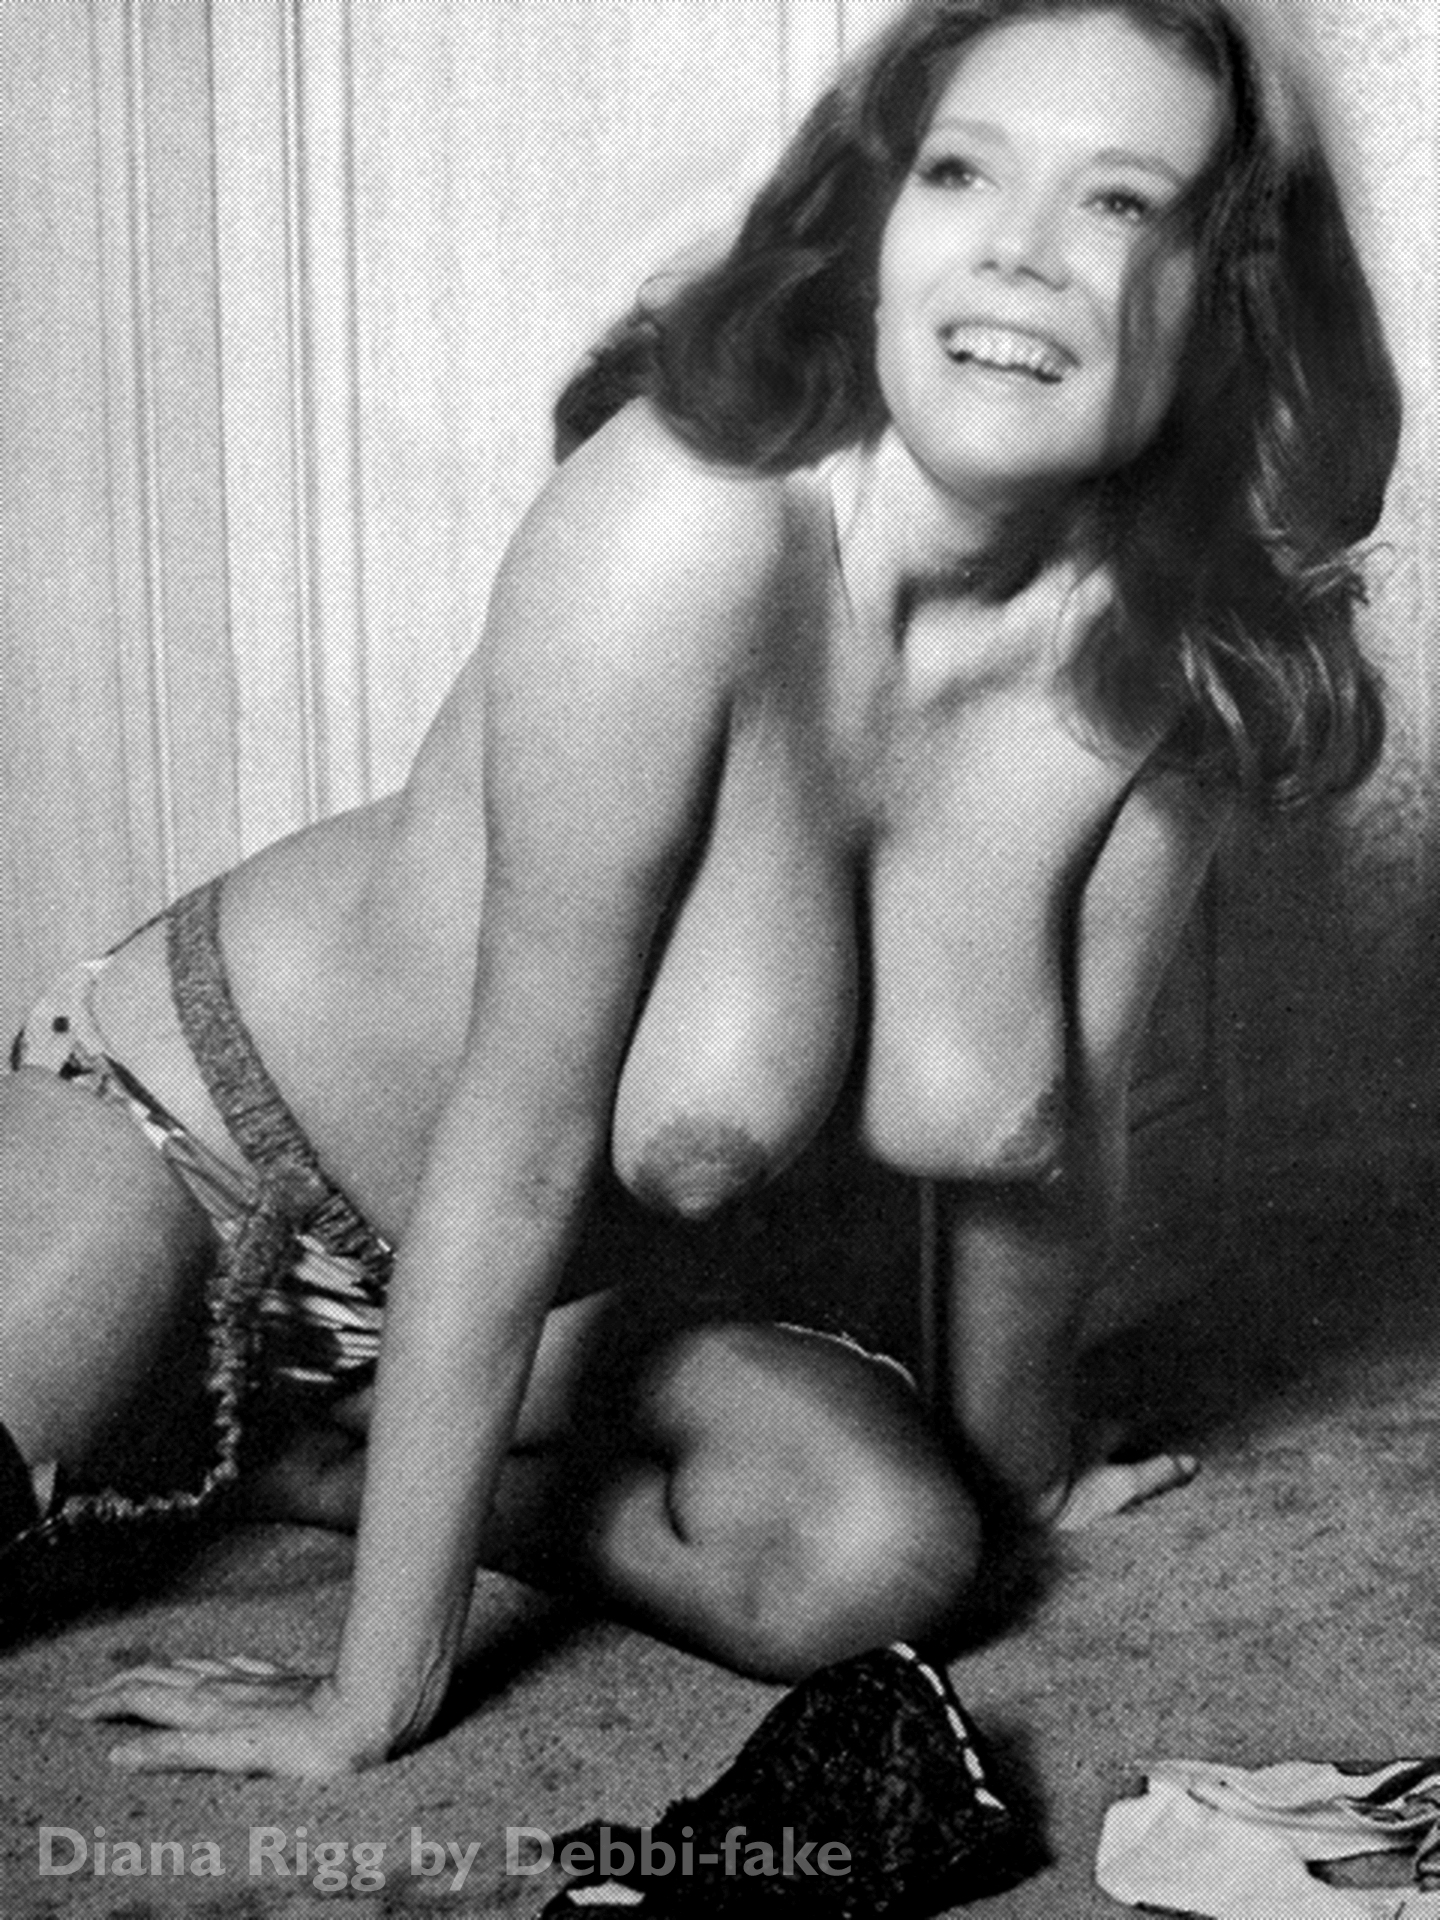 Are certainly Naked diana rigg nude you advise